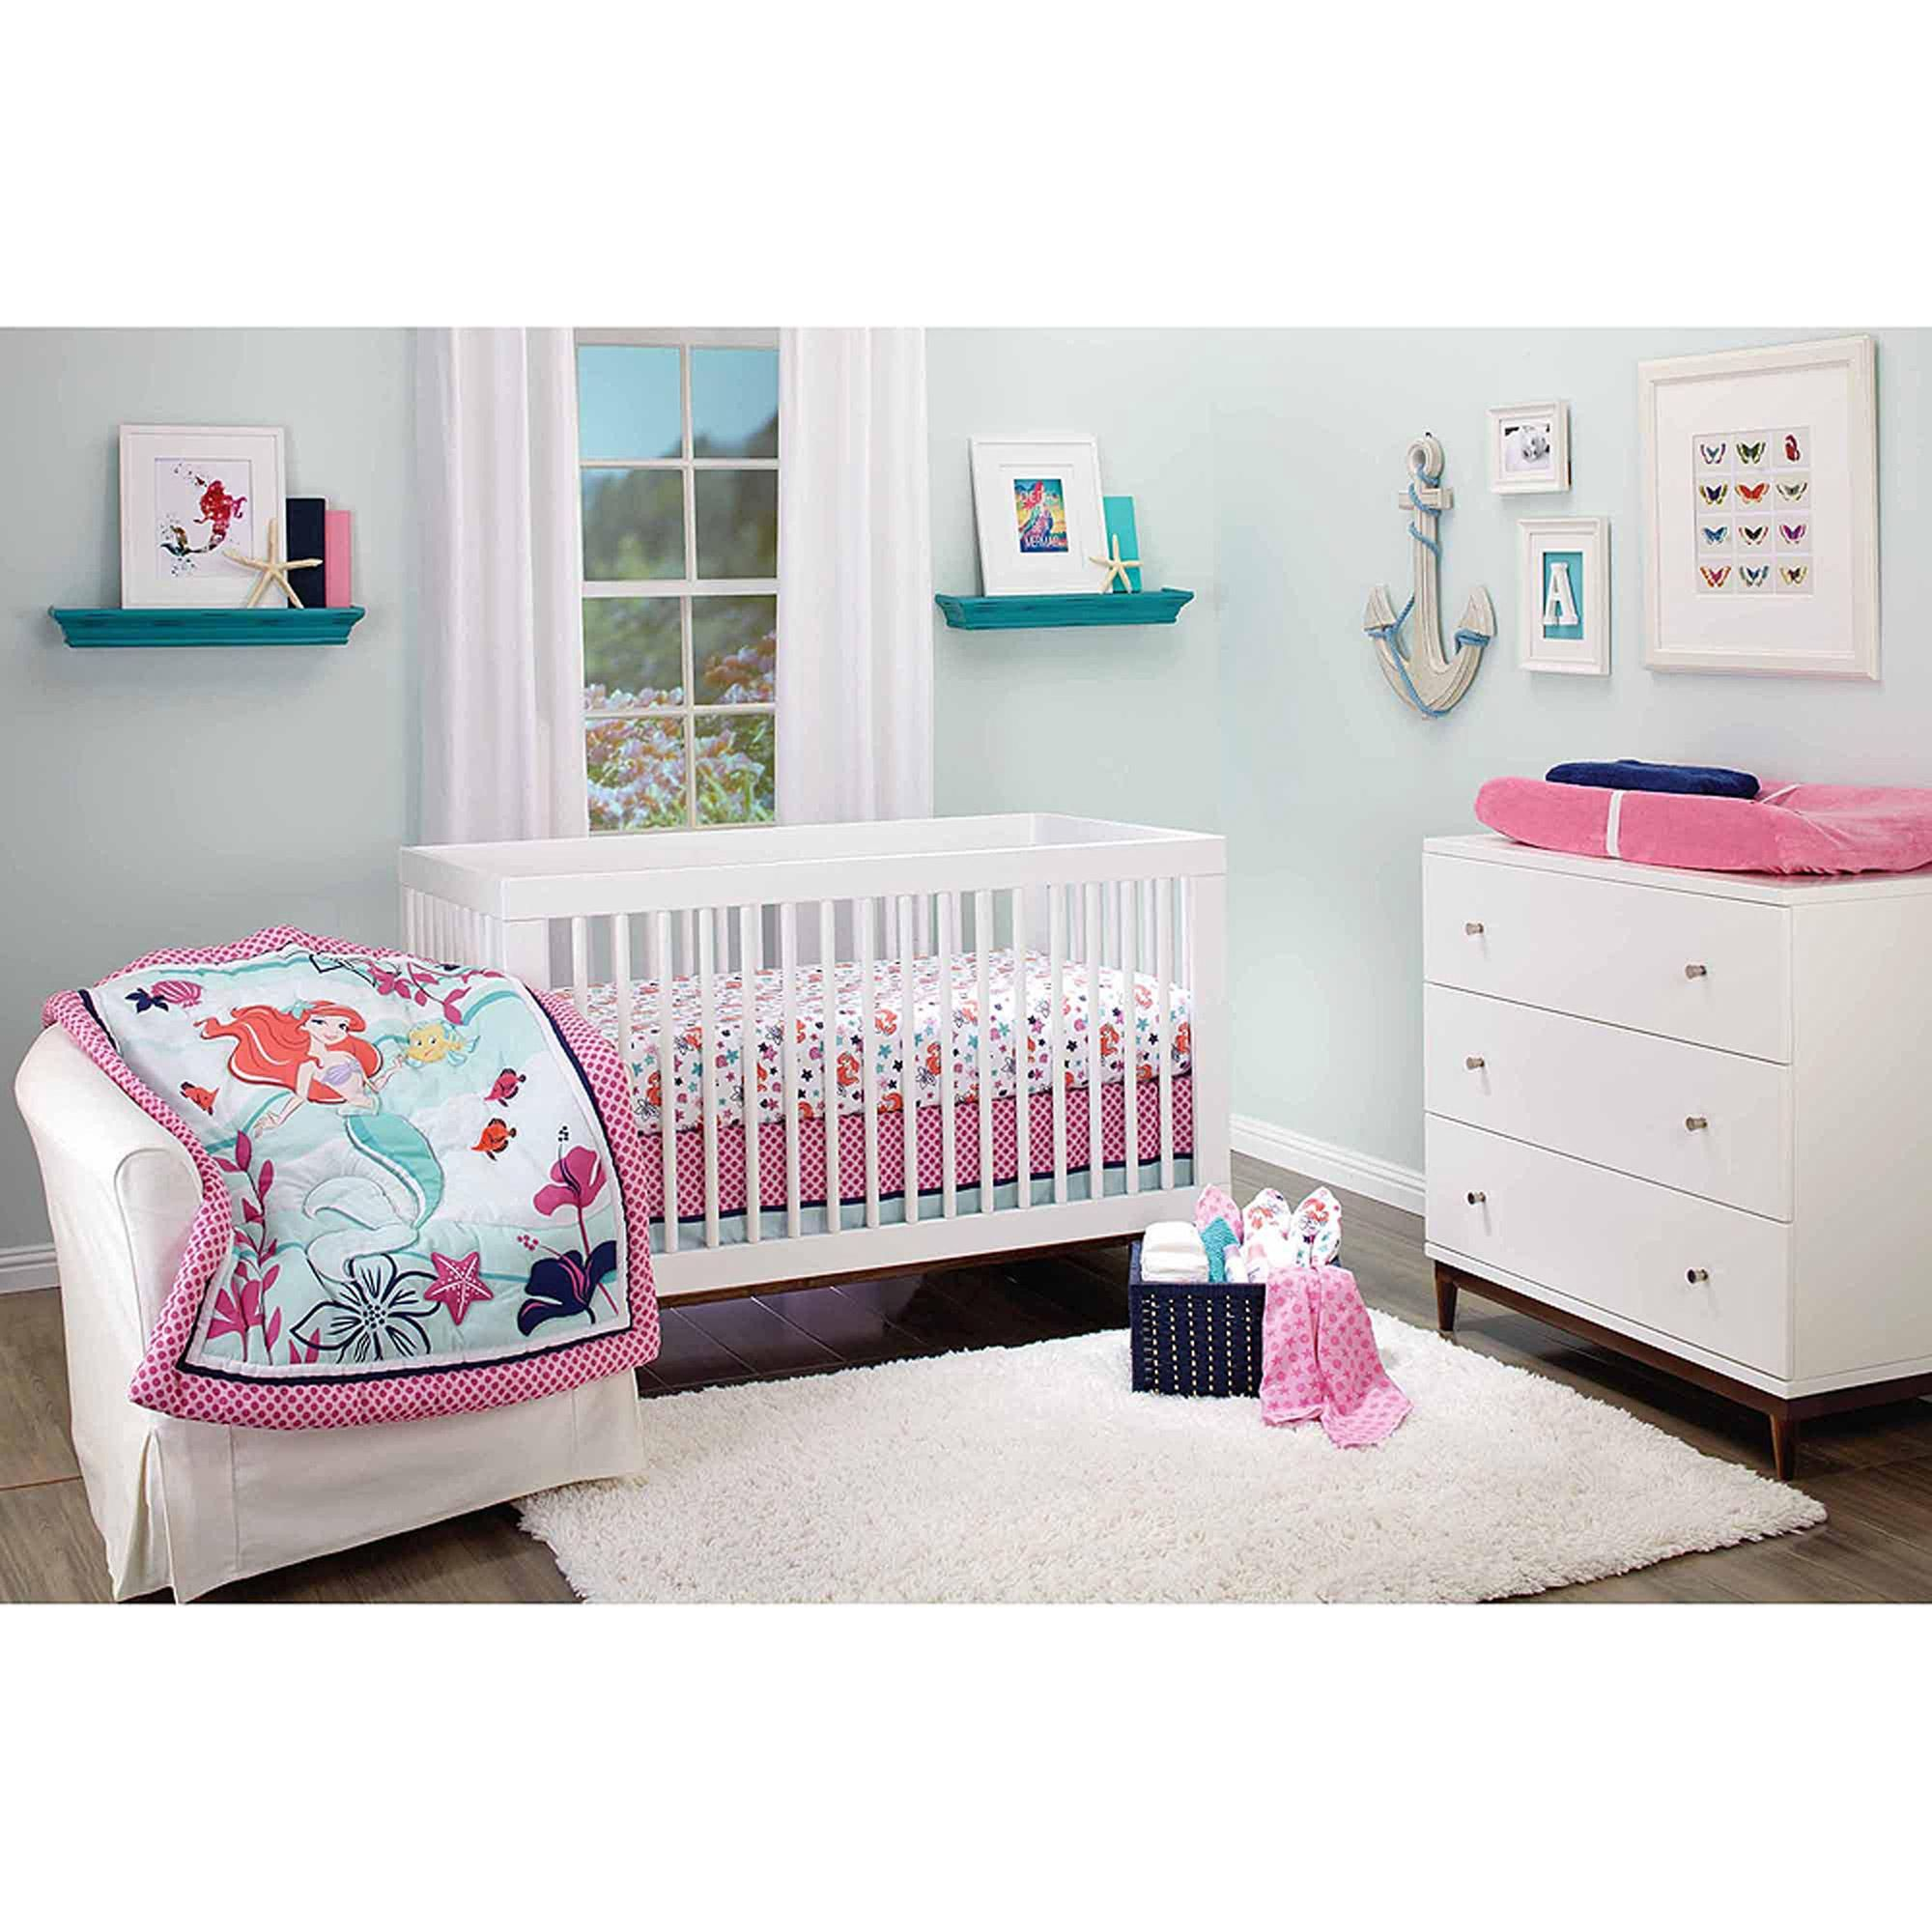 Disney Ariel Sea Treasures 3 Piece Crib Bedding Set Walmart Com